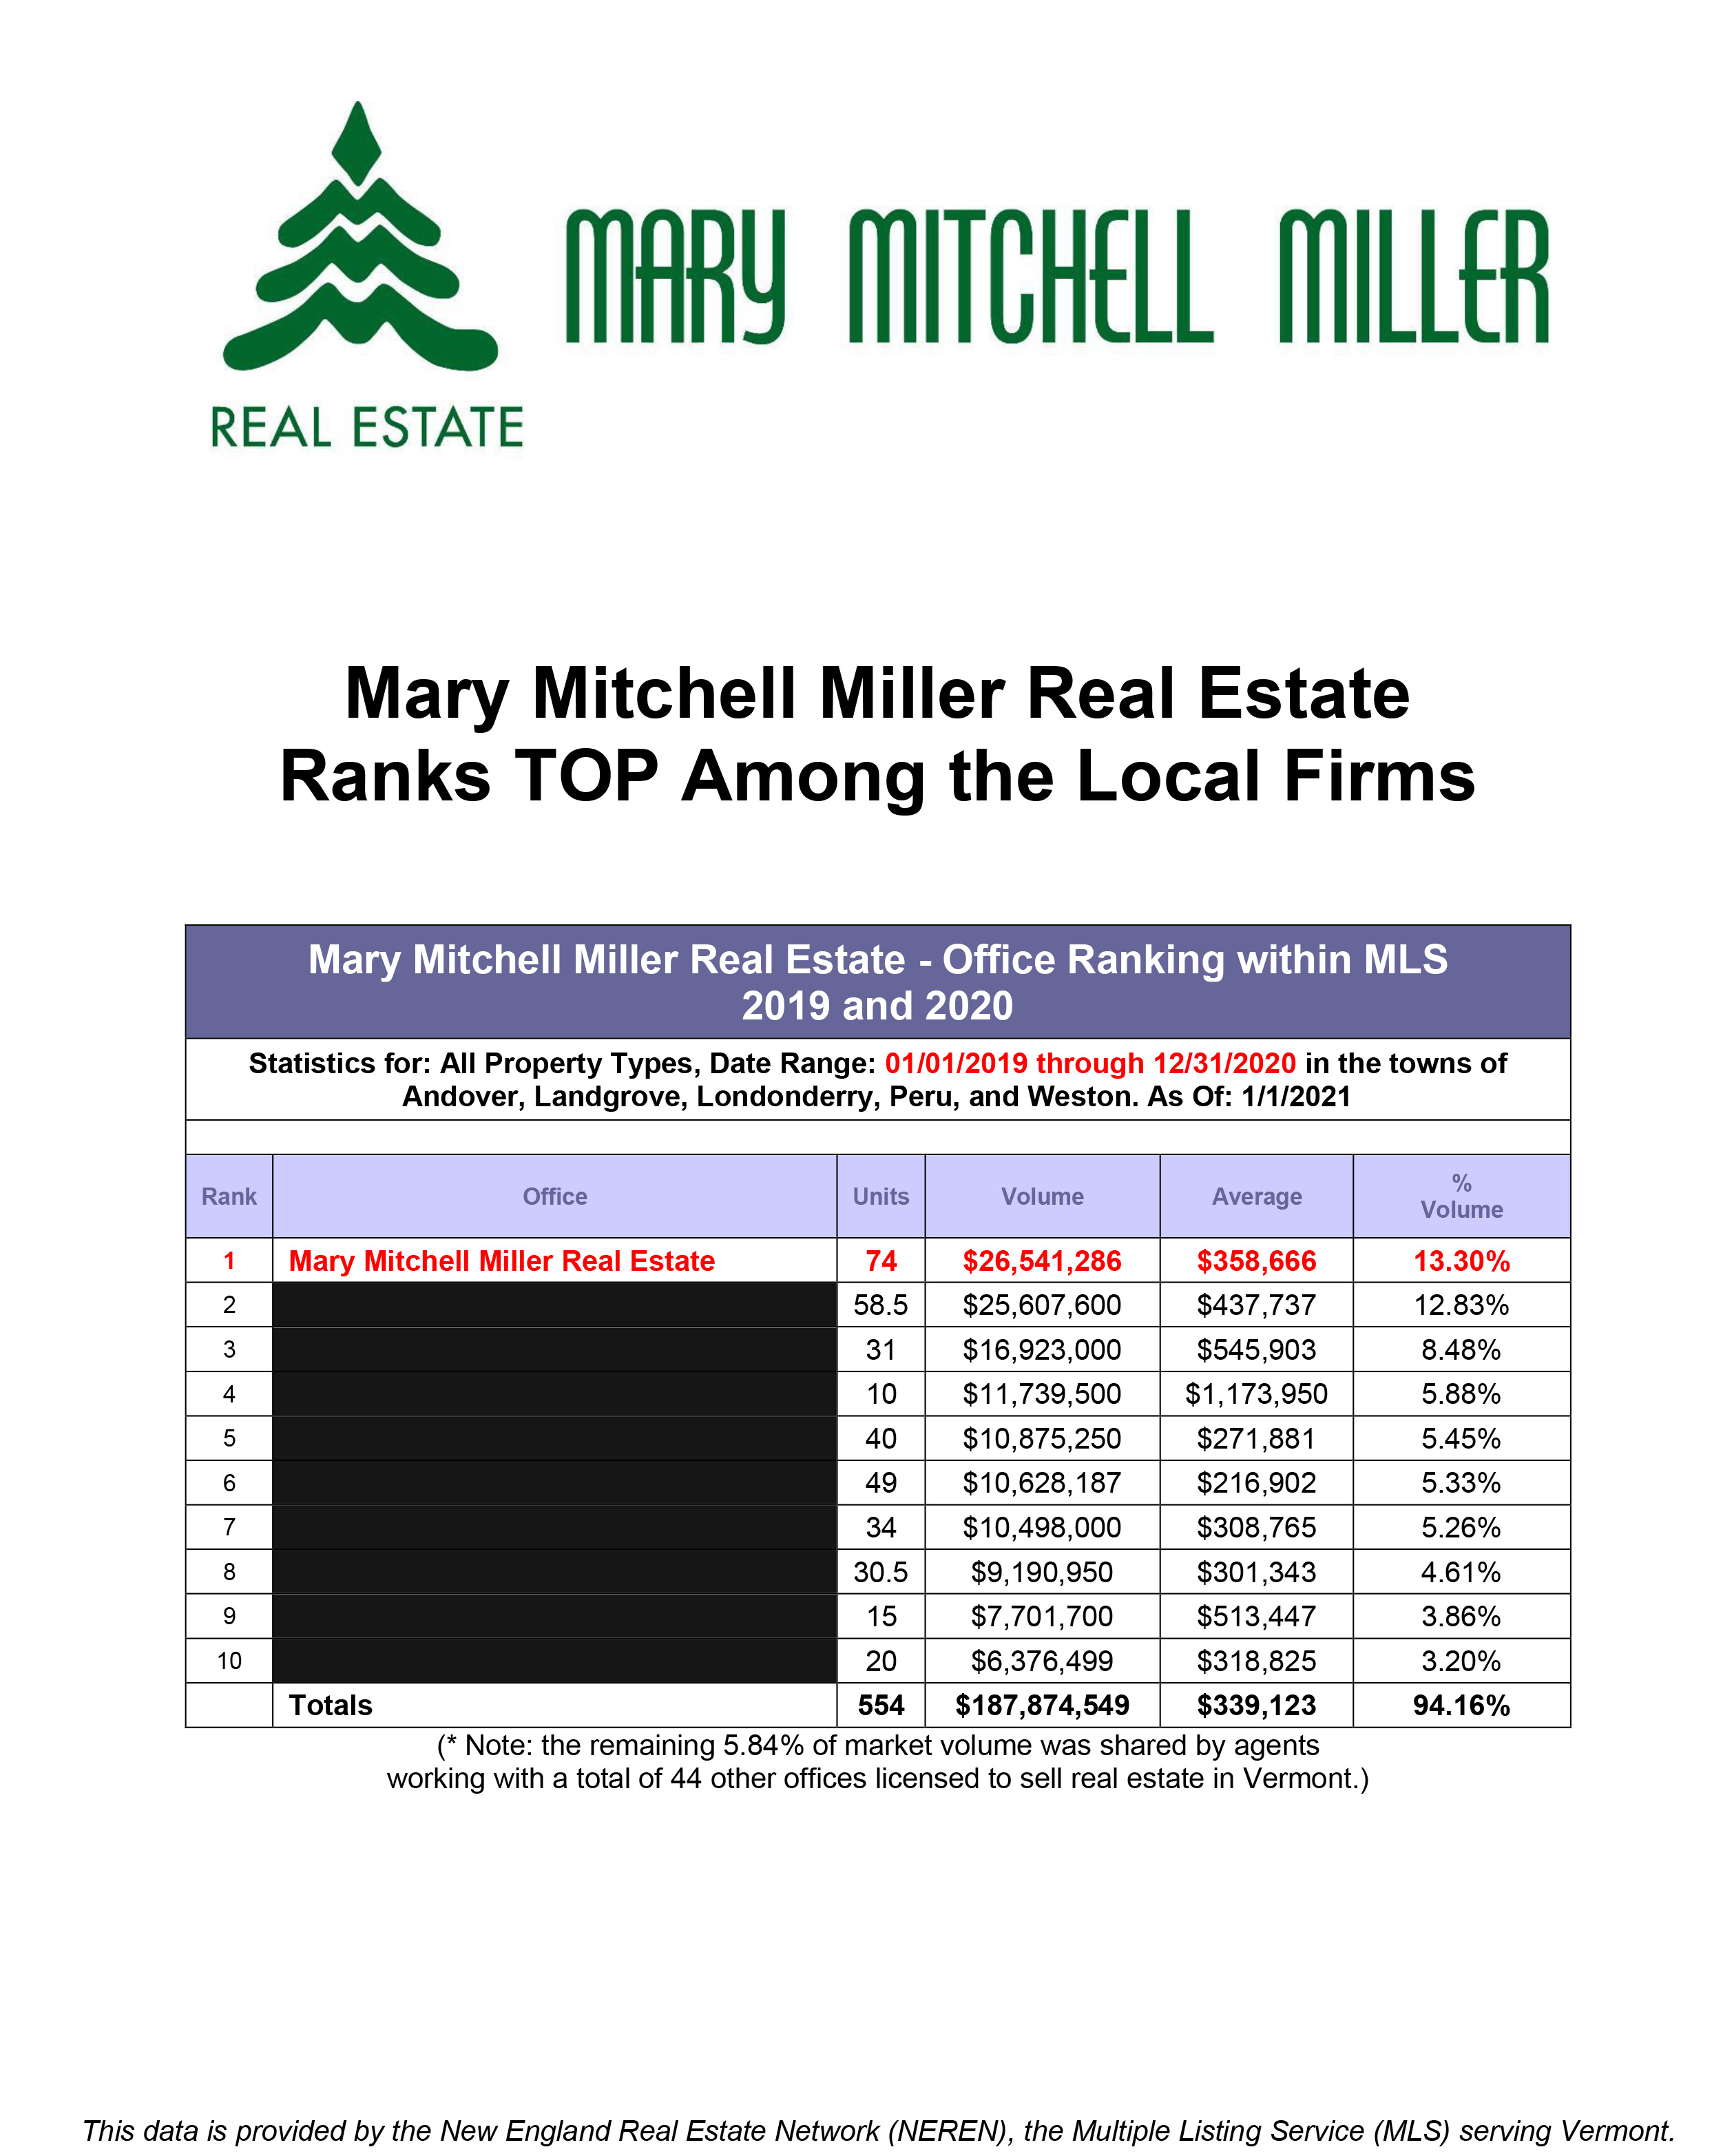 Spreadsheet Showing Sales Statistics. If you'd like to discuss, please call (802)824-3176